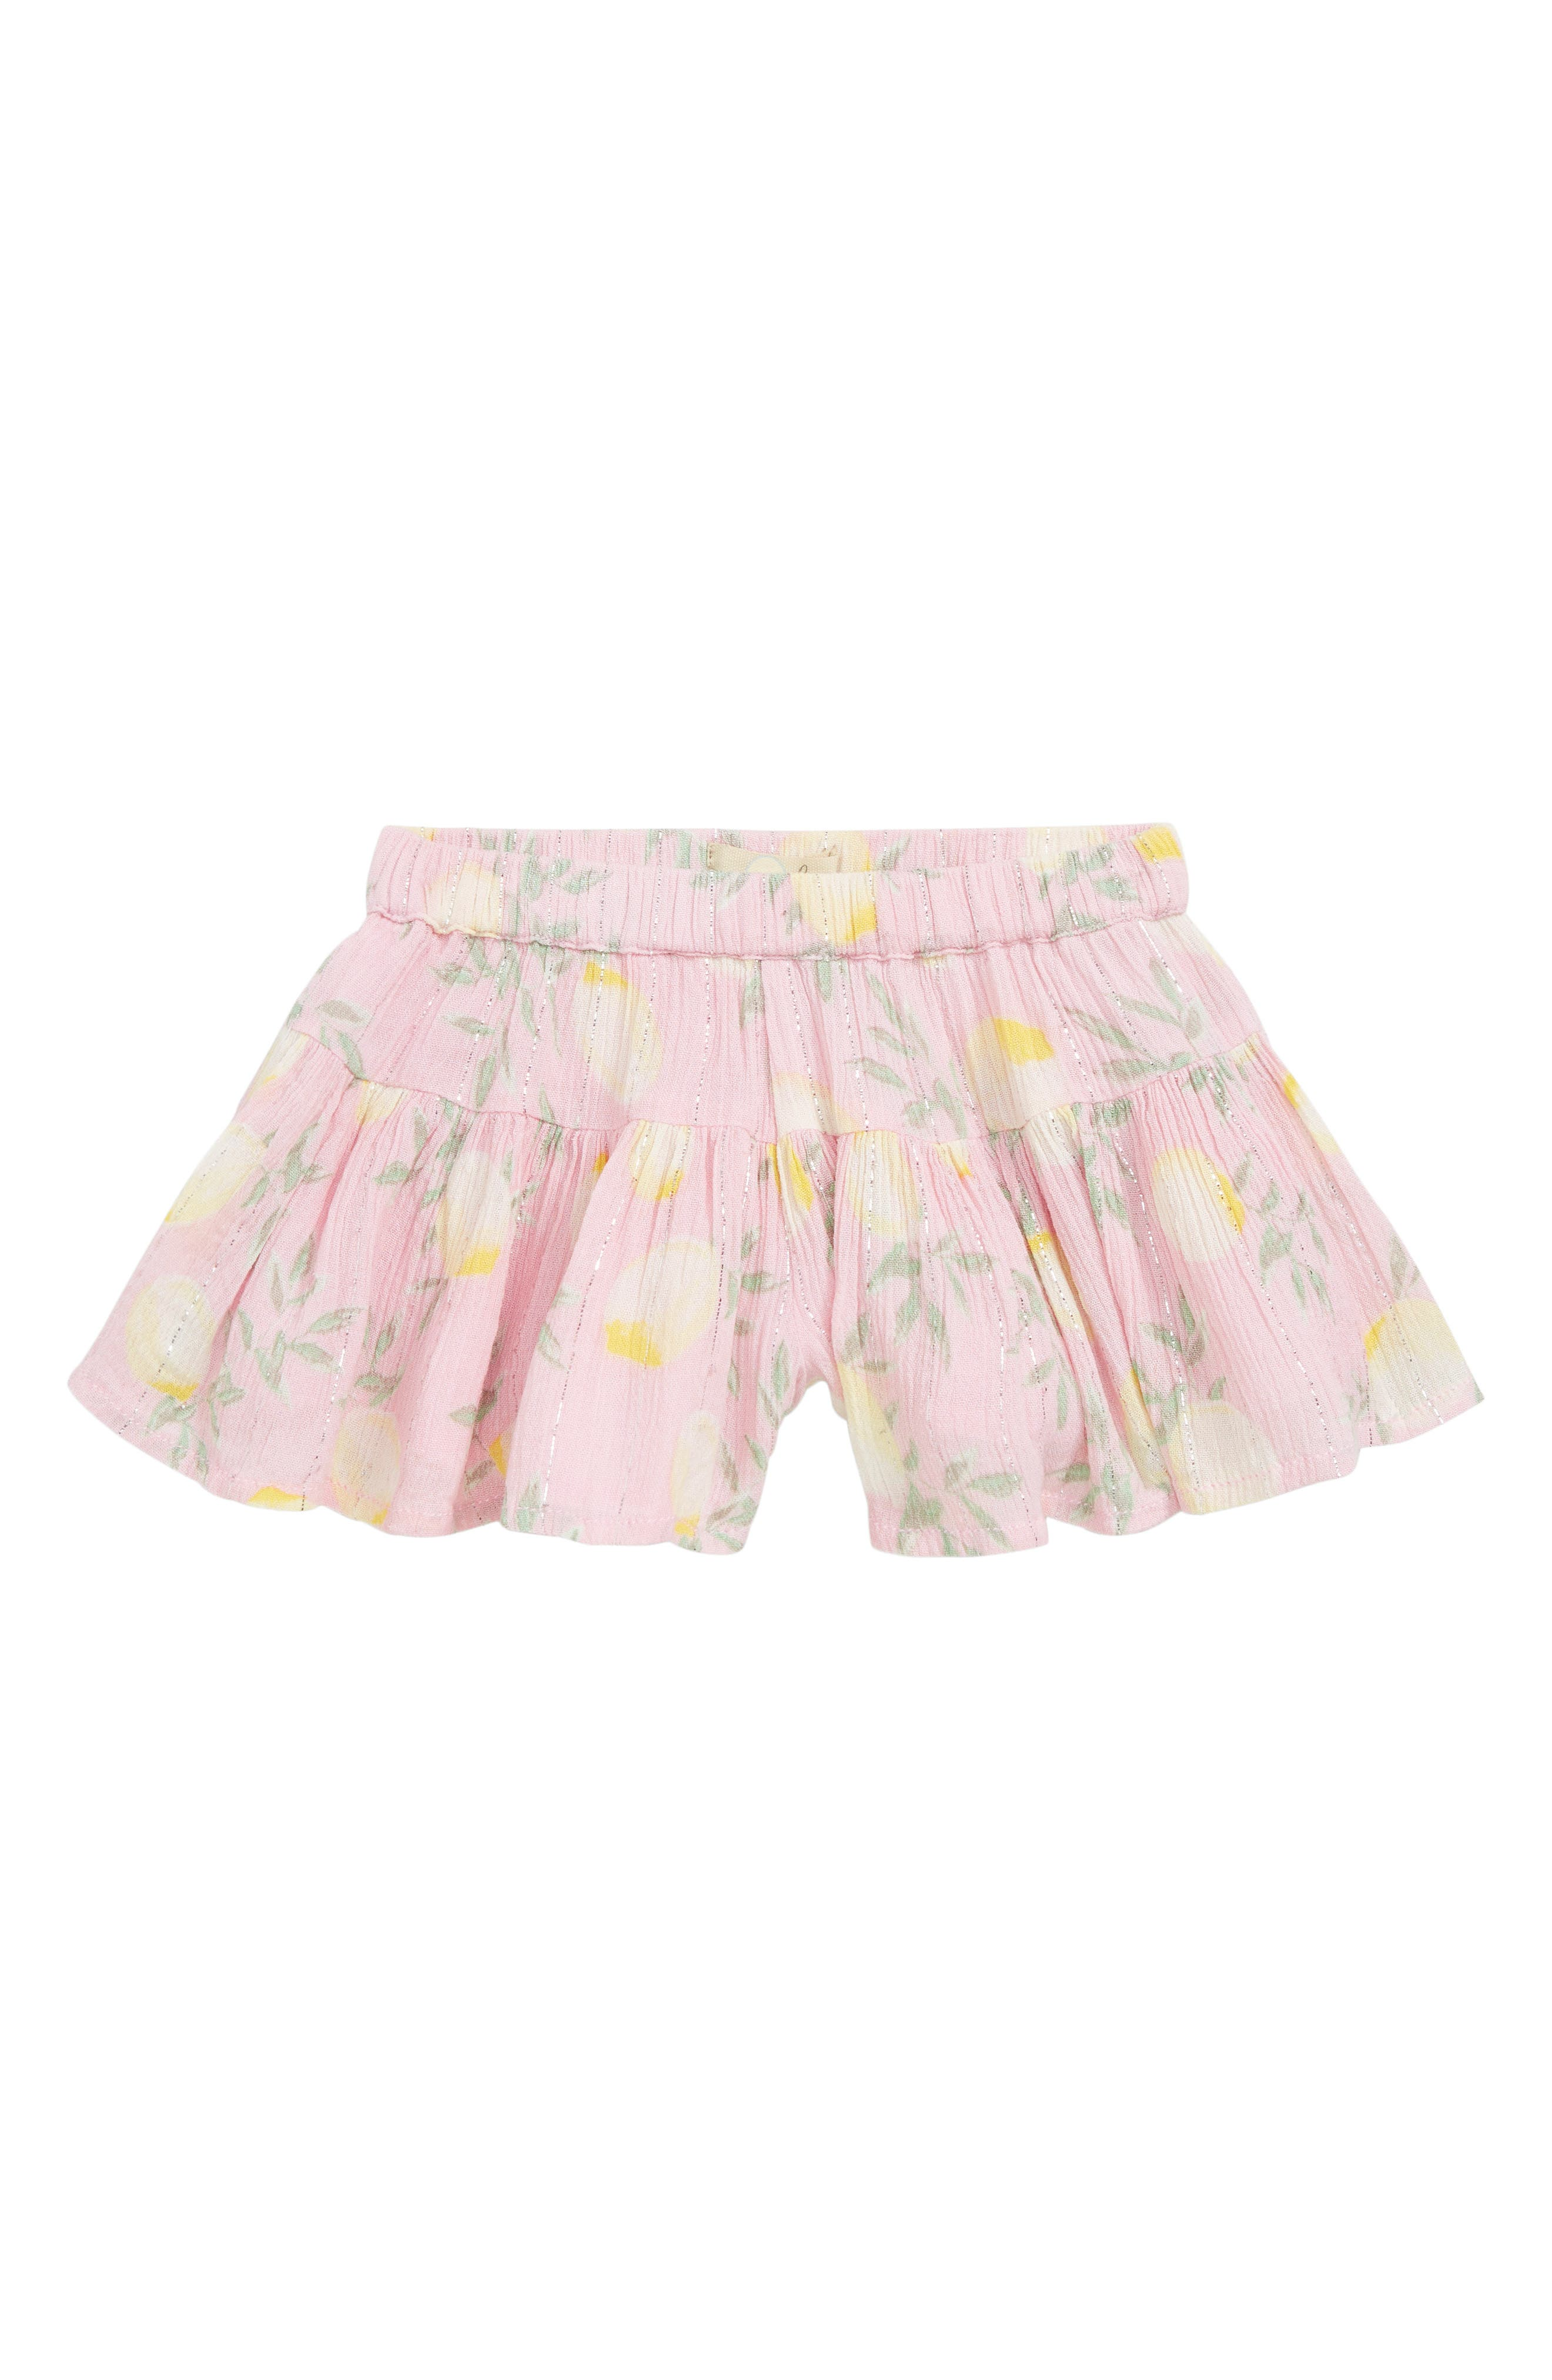 Infant Girls Peek Alexa Skort Size S (36m)  Pink